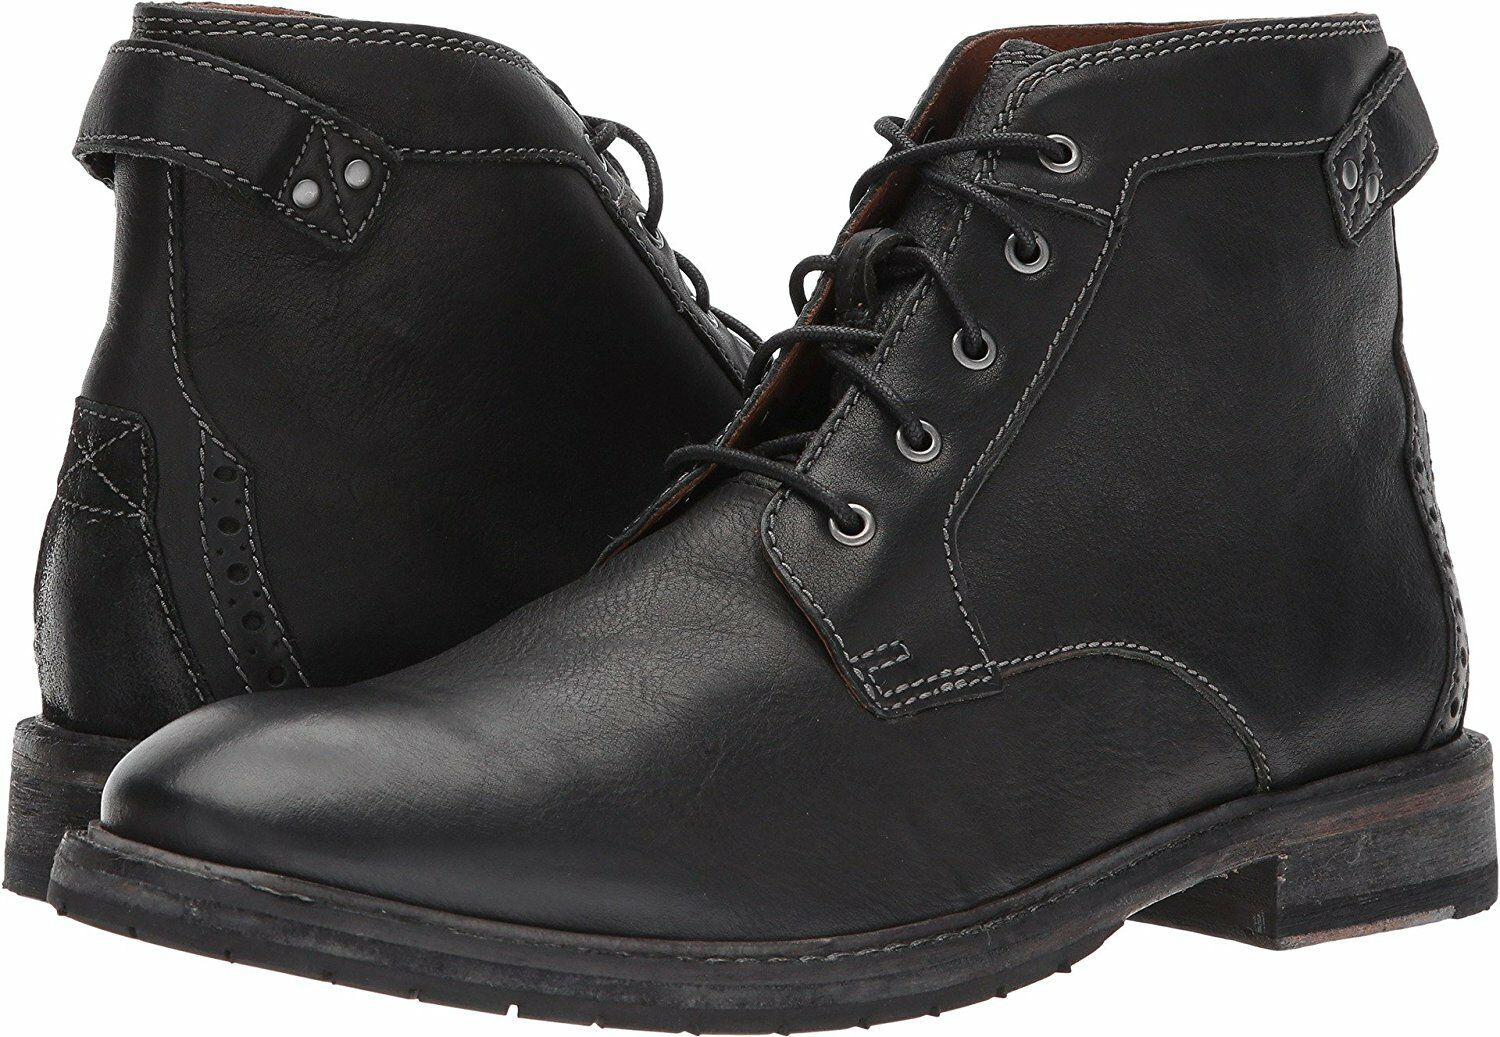 Clarks - Uomo Clarkdale Bud Low Boot- Pick SZ/Color.